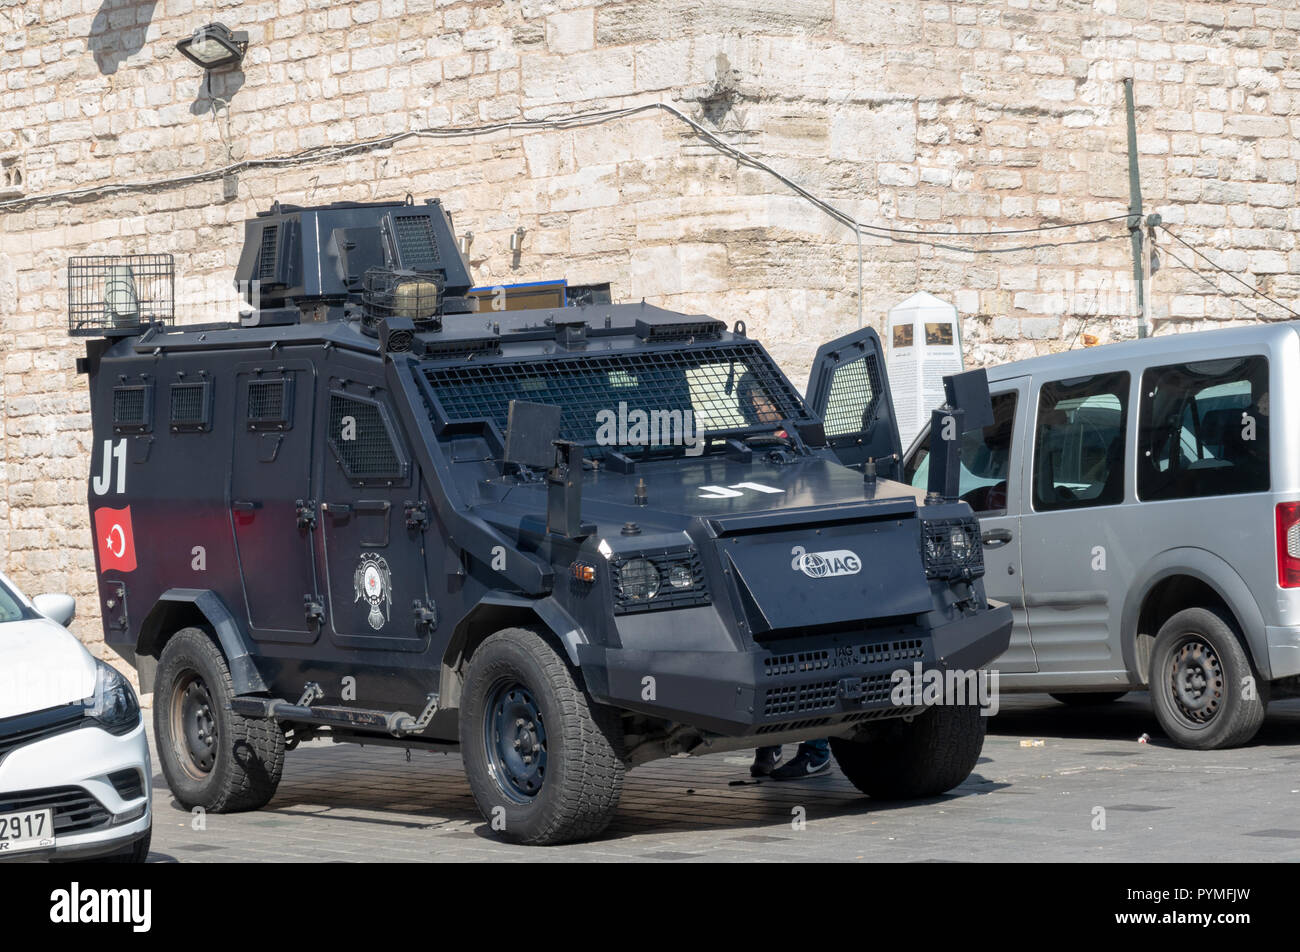 Istanbul, Turkey, September 2018: Martial armoured car of the Turkish police on Taksim Square in the centre of Istanbul. - Stock Image